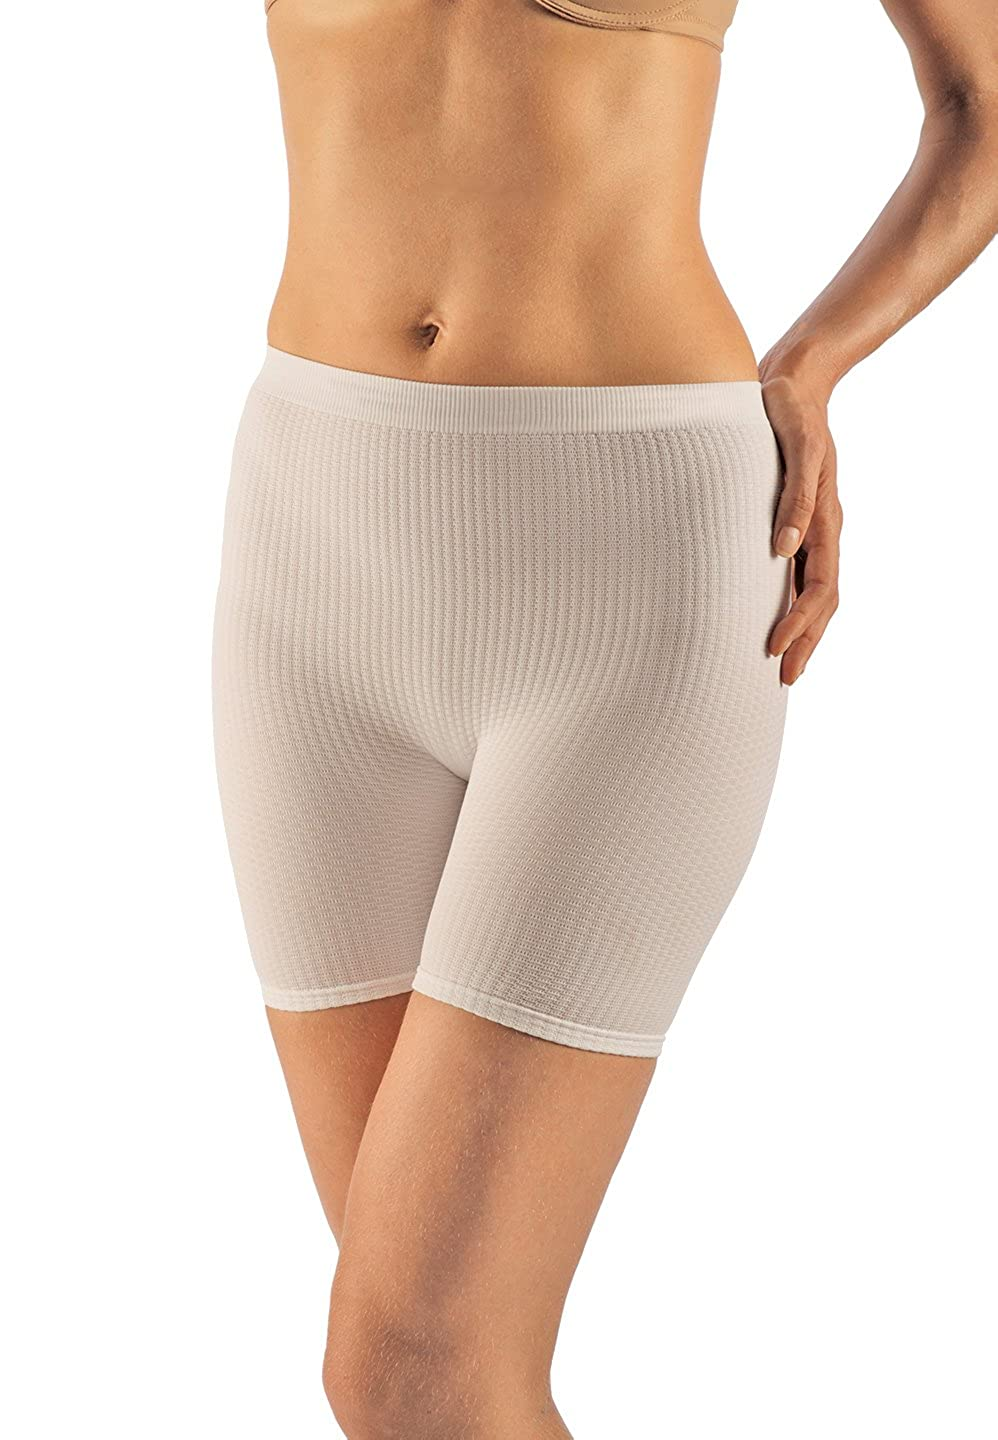 Farmacell 102 Women's Anti-Cellulite micromassage mid-Thigh Shorts Calze G.T. S.r.l.